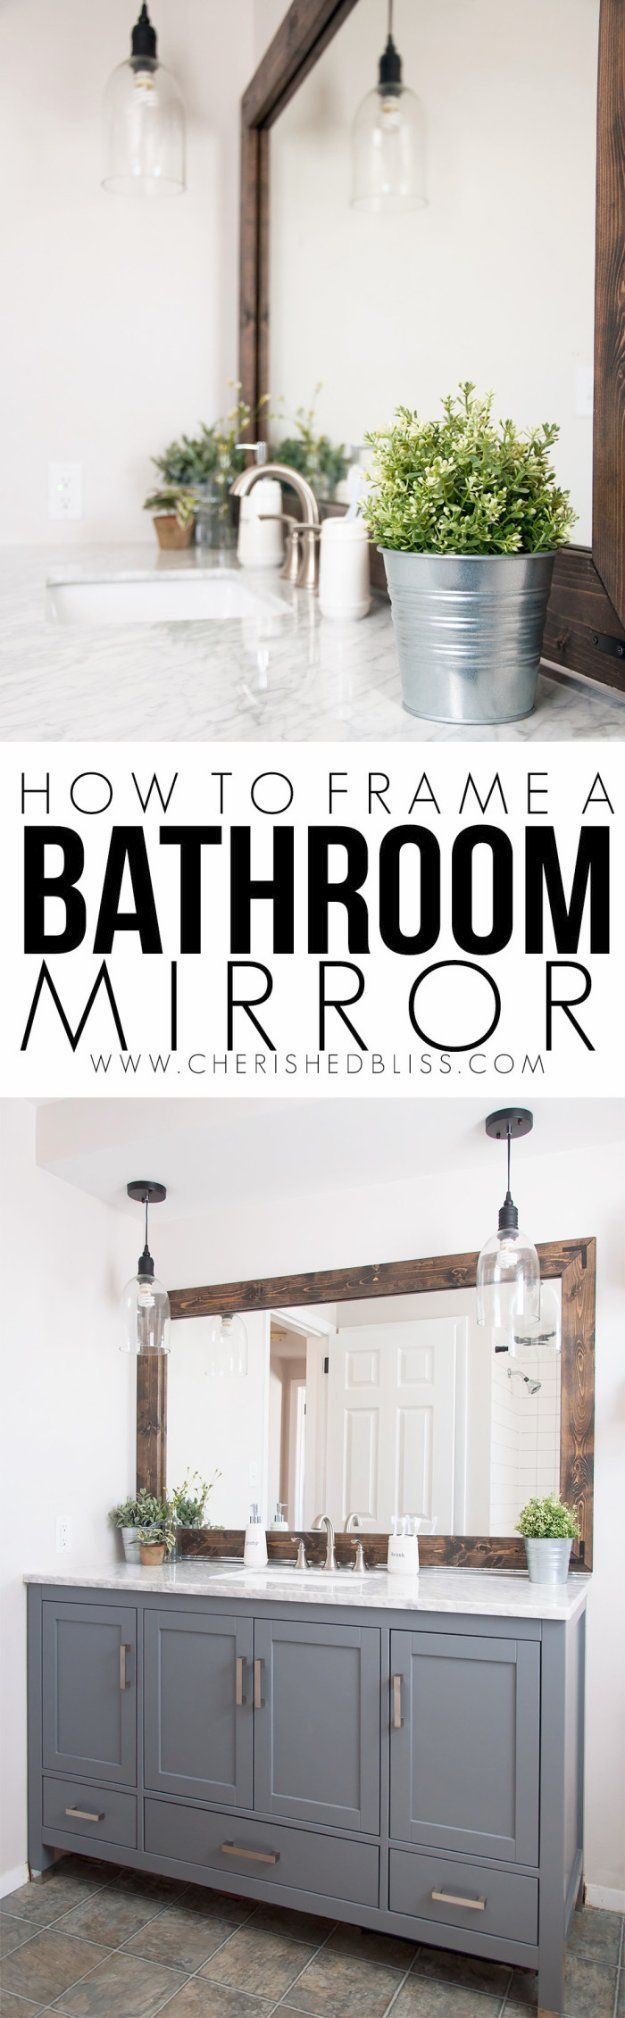 25 Best Ideas About Decorating Bathrooms On Pinterest Restroom Ideas Guest Bathroom